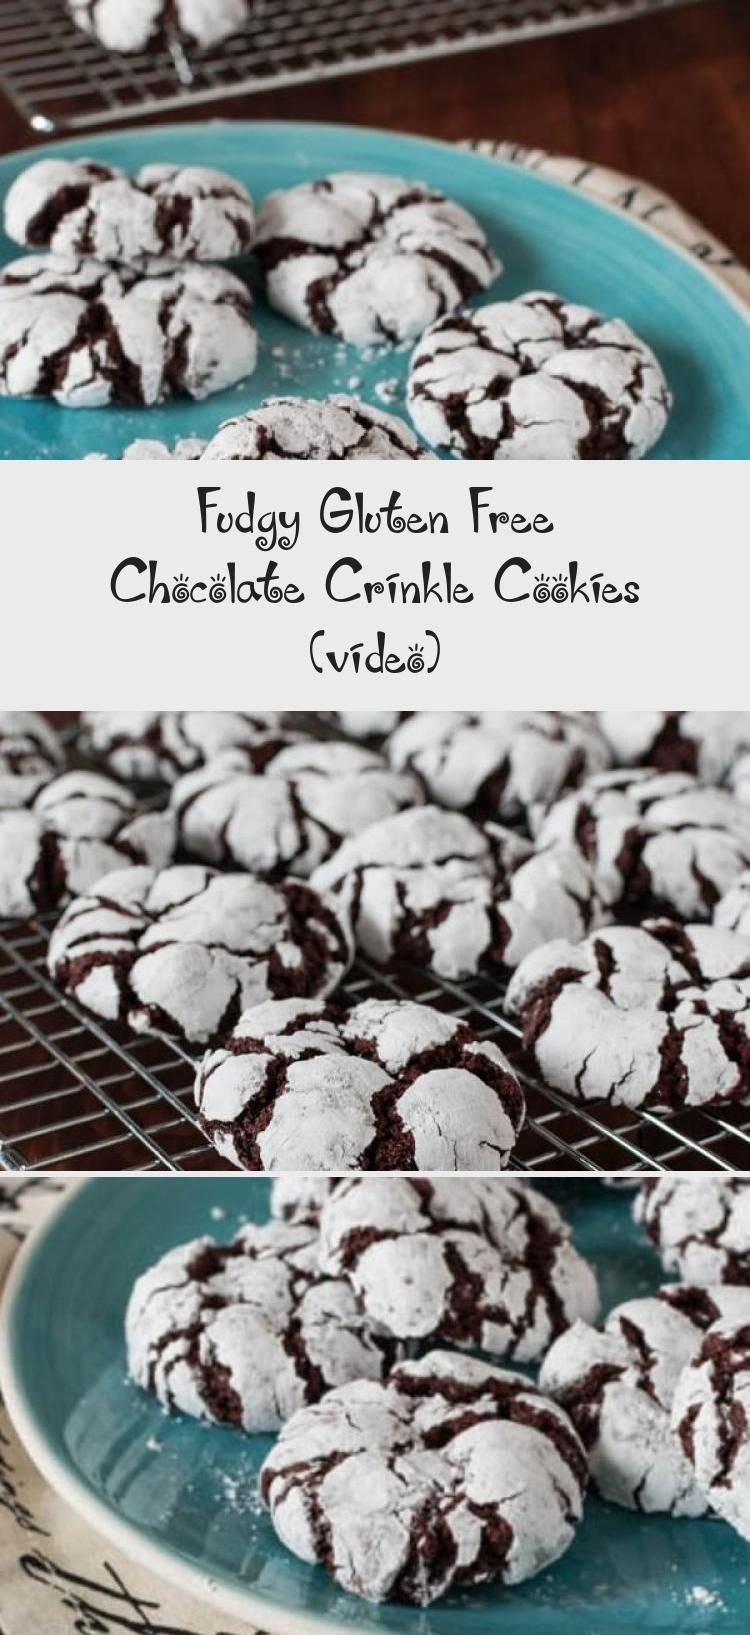 Rolled in powdered sugar, these Fudgy Gluten Free Chocolate Crinkle Cookies are crisp on the outside and soft and chewy on the inside. Who says you can only bake these at Christmas? #FoodandDrinkGlutenFree #chocolatecrinklecookies